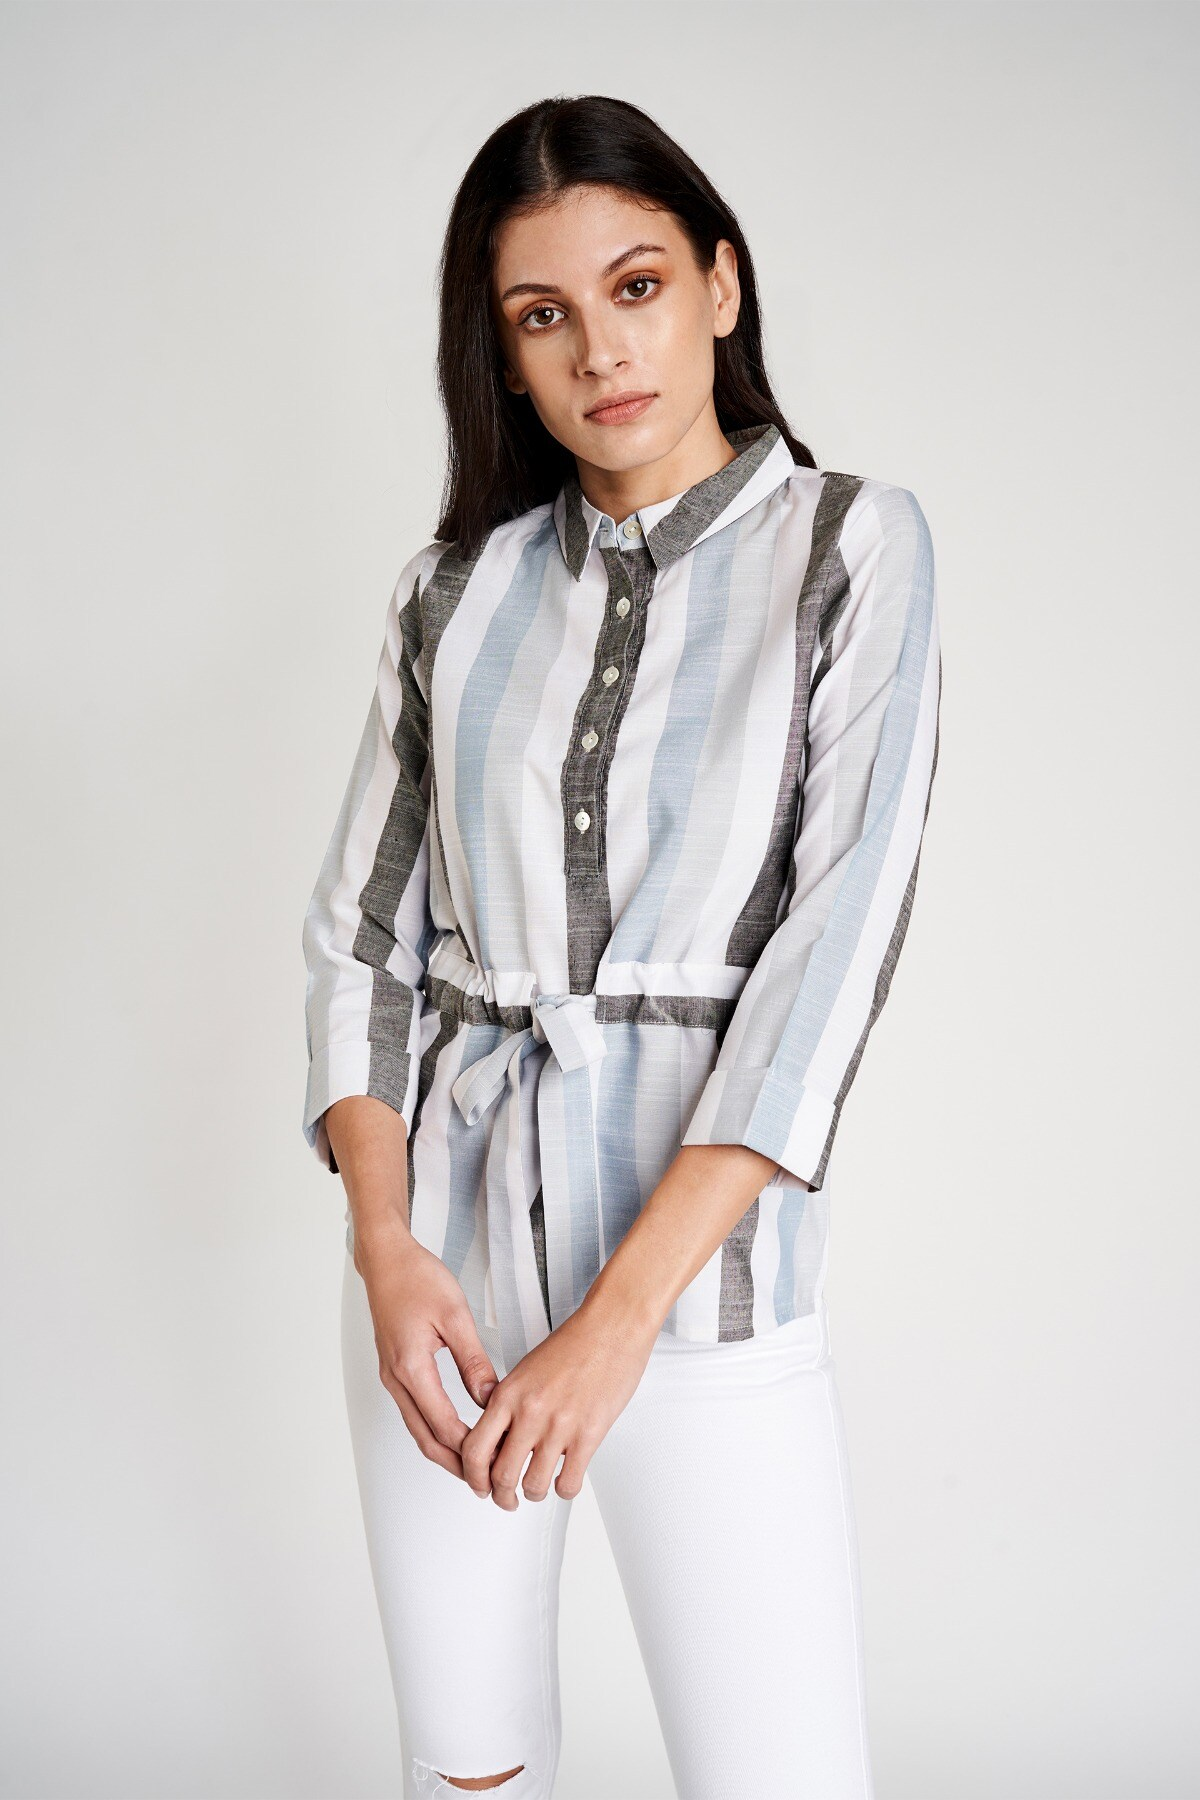 AND   Powder Blue Shirt Style Collar Cuff Top